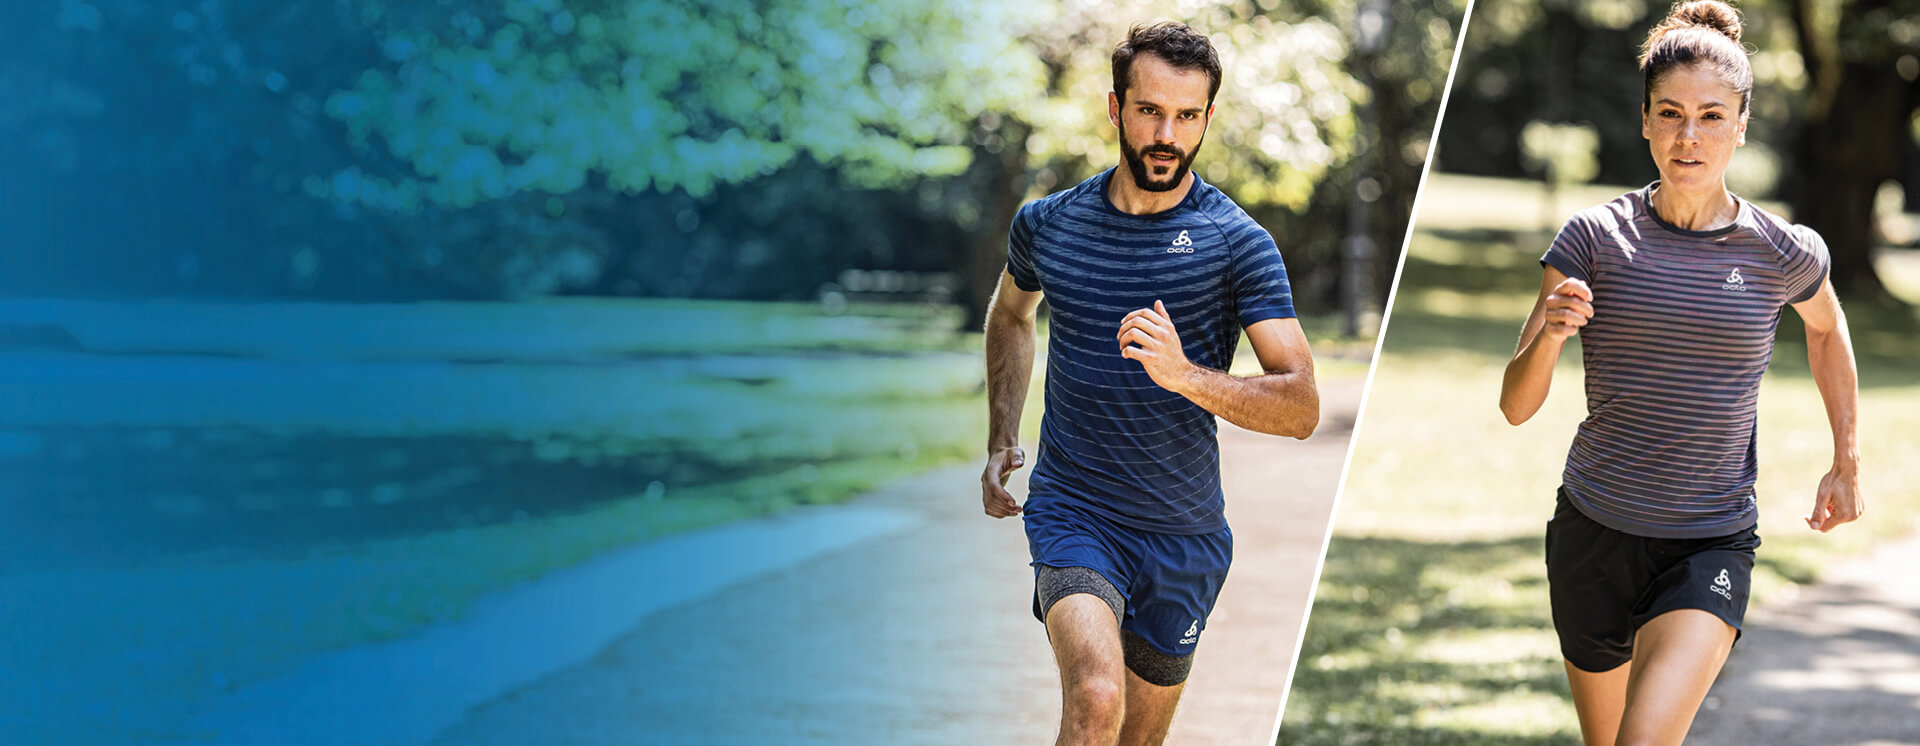 running collection for men and women